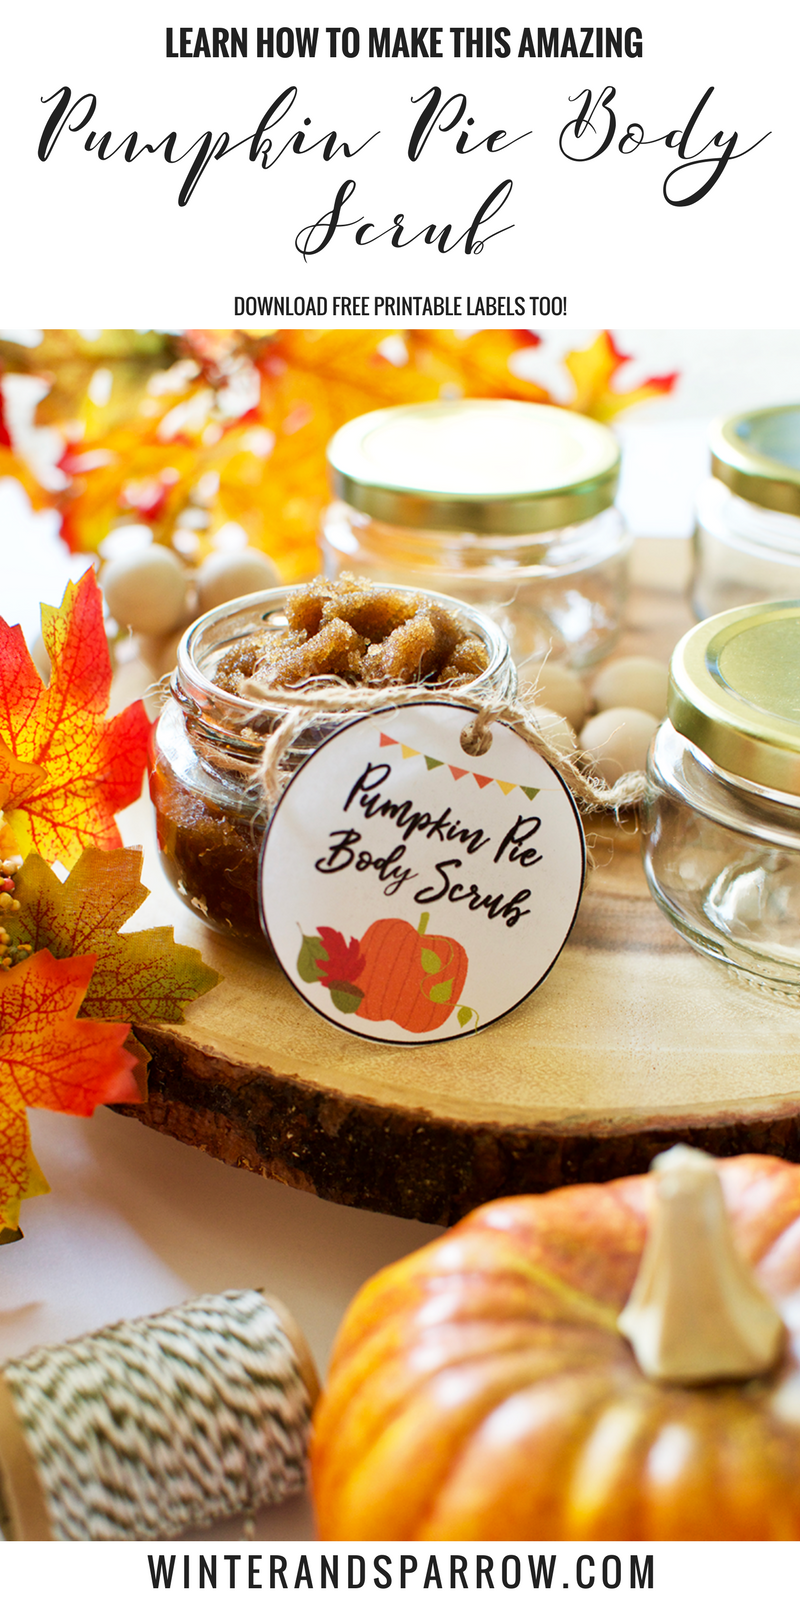 DIY: Amazing Pumpkin Pie Body Scrub + Free Printable Labels #SKSHarvest #SeasonalSolutions #ad winterandsparrow.com